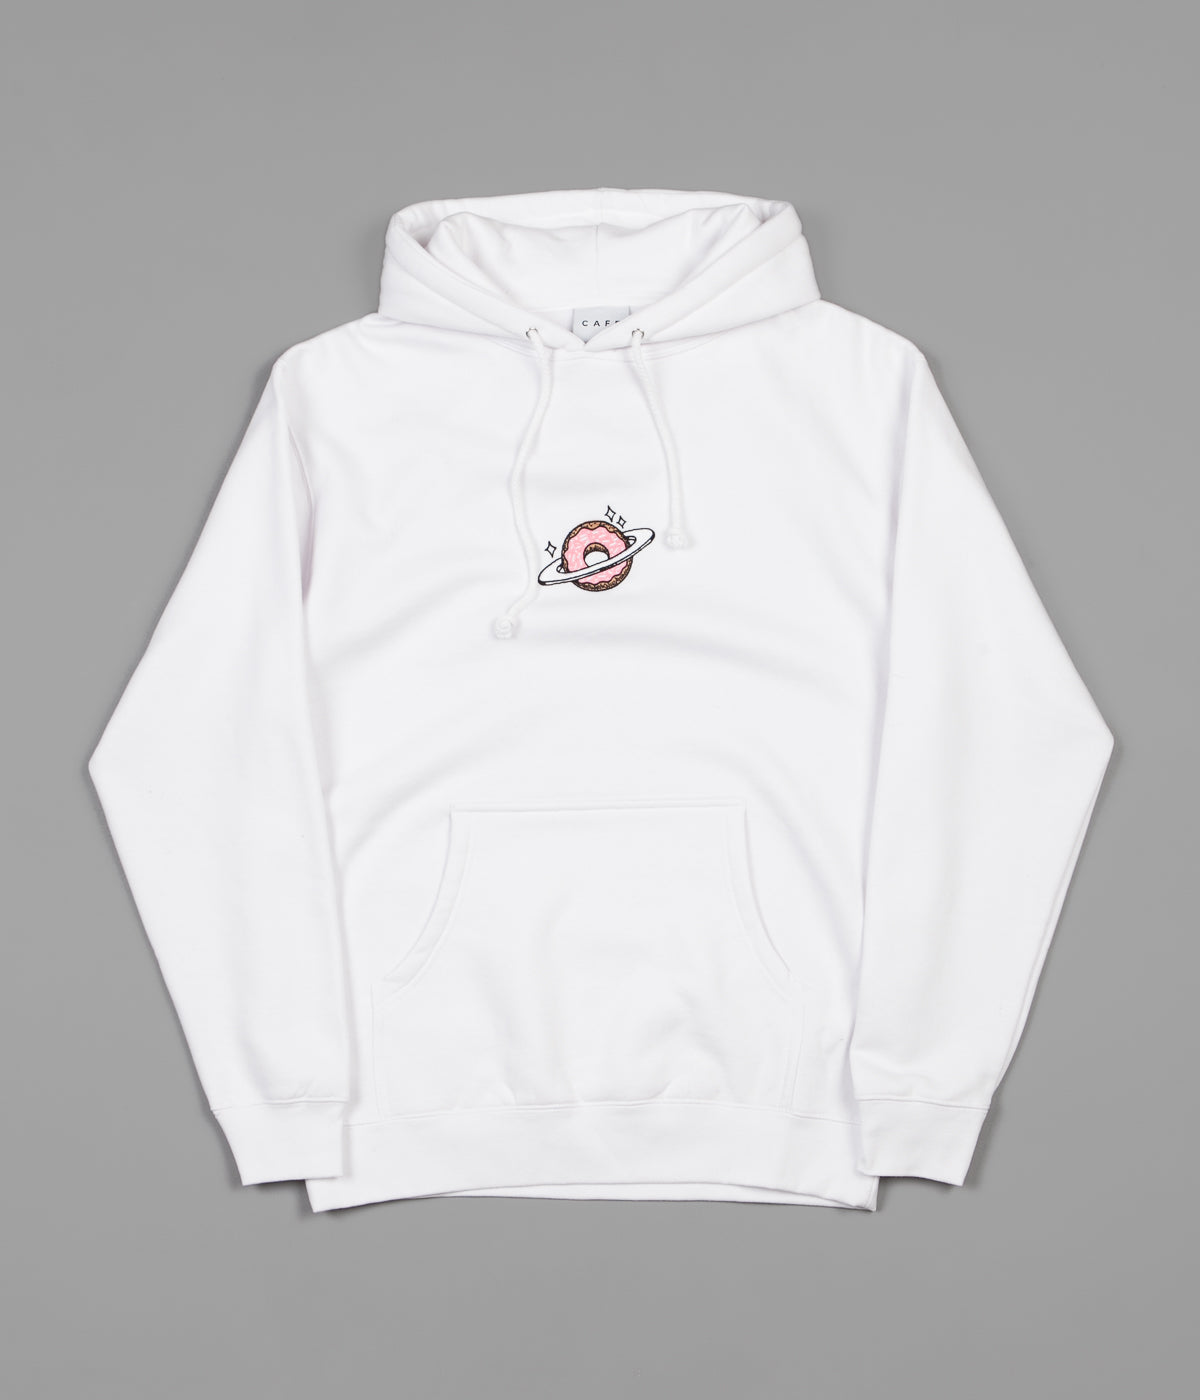 Skateboard Cafe Planet Donut Embroidered Hoodie - White